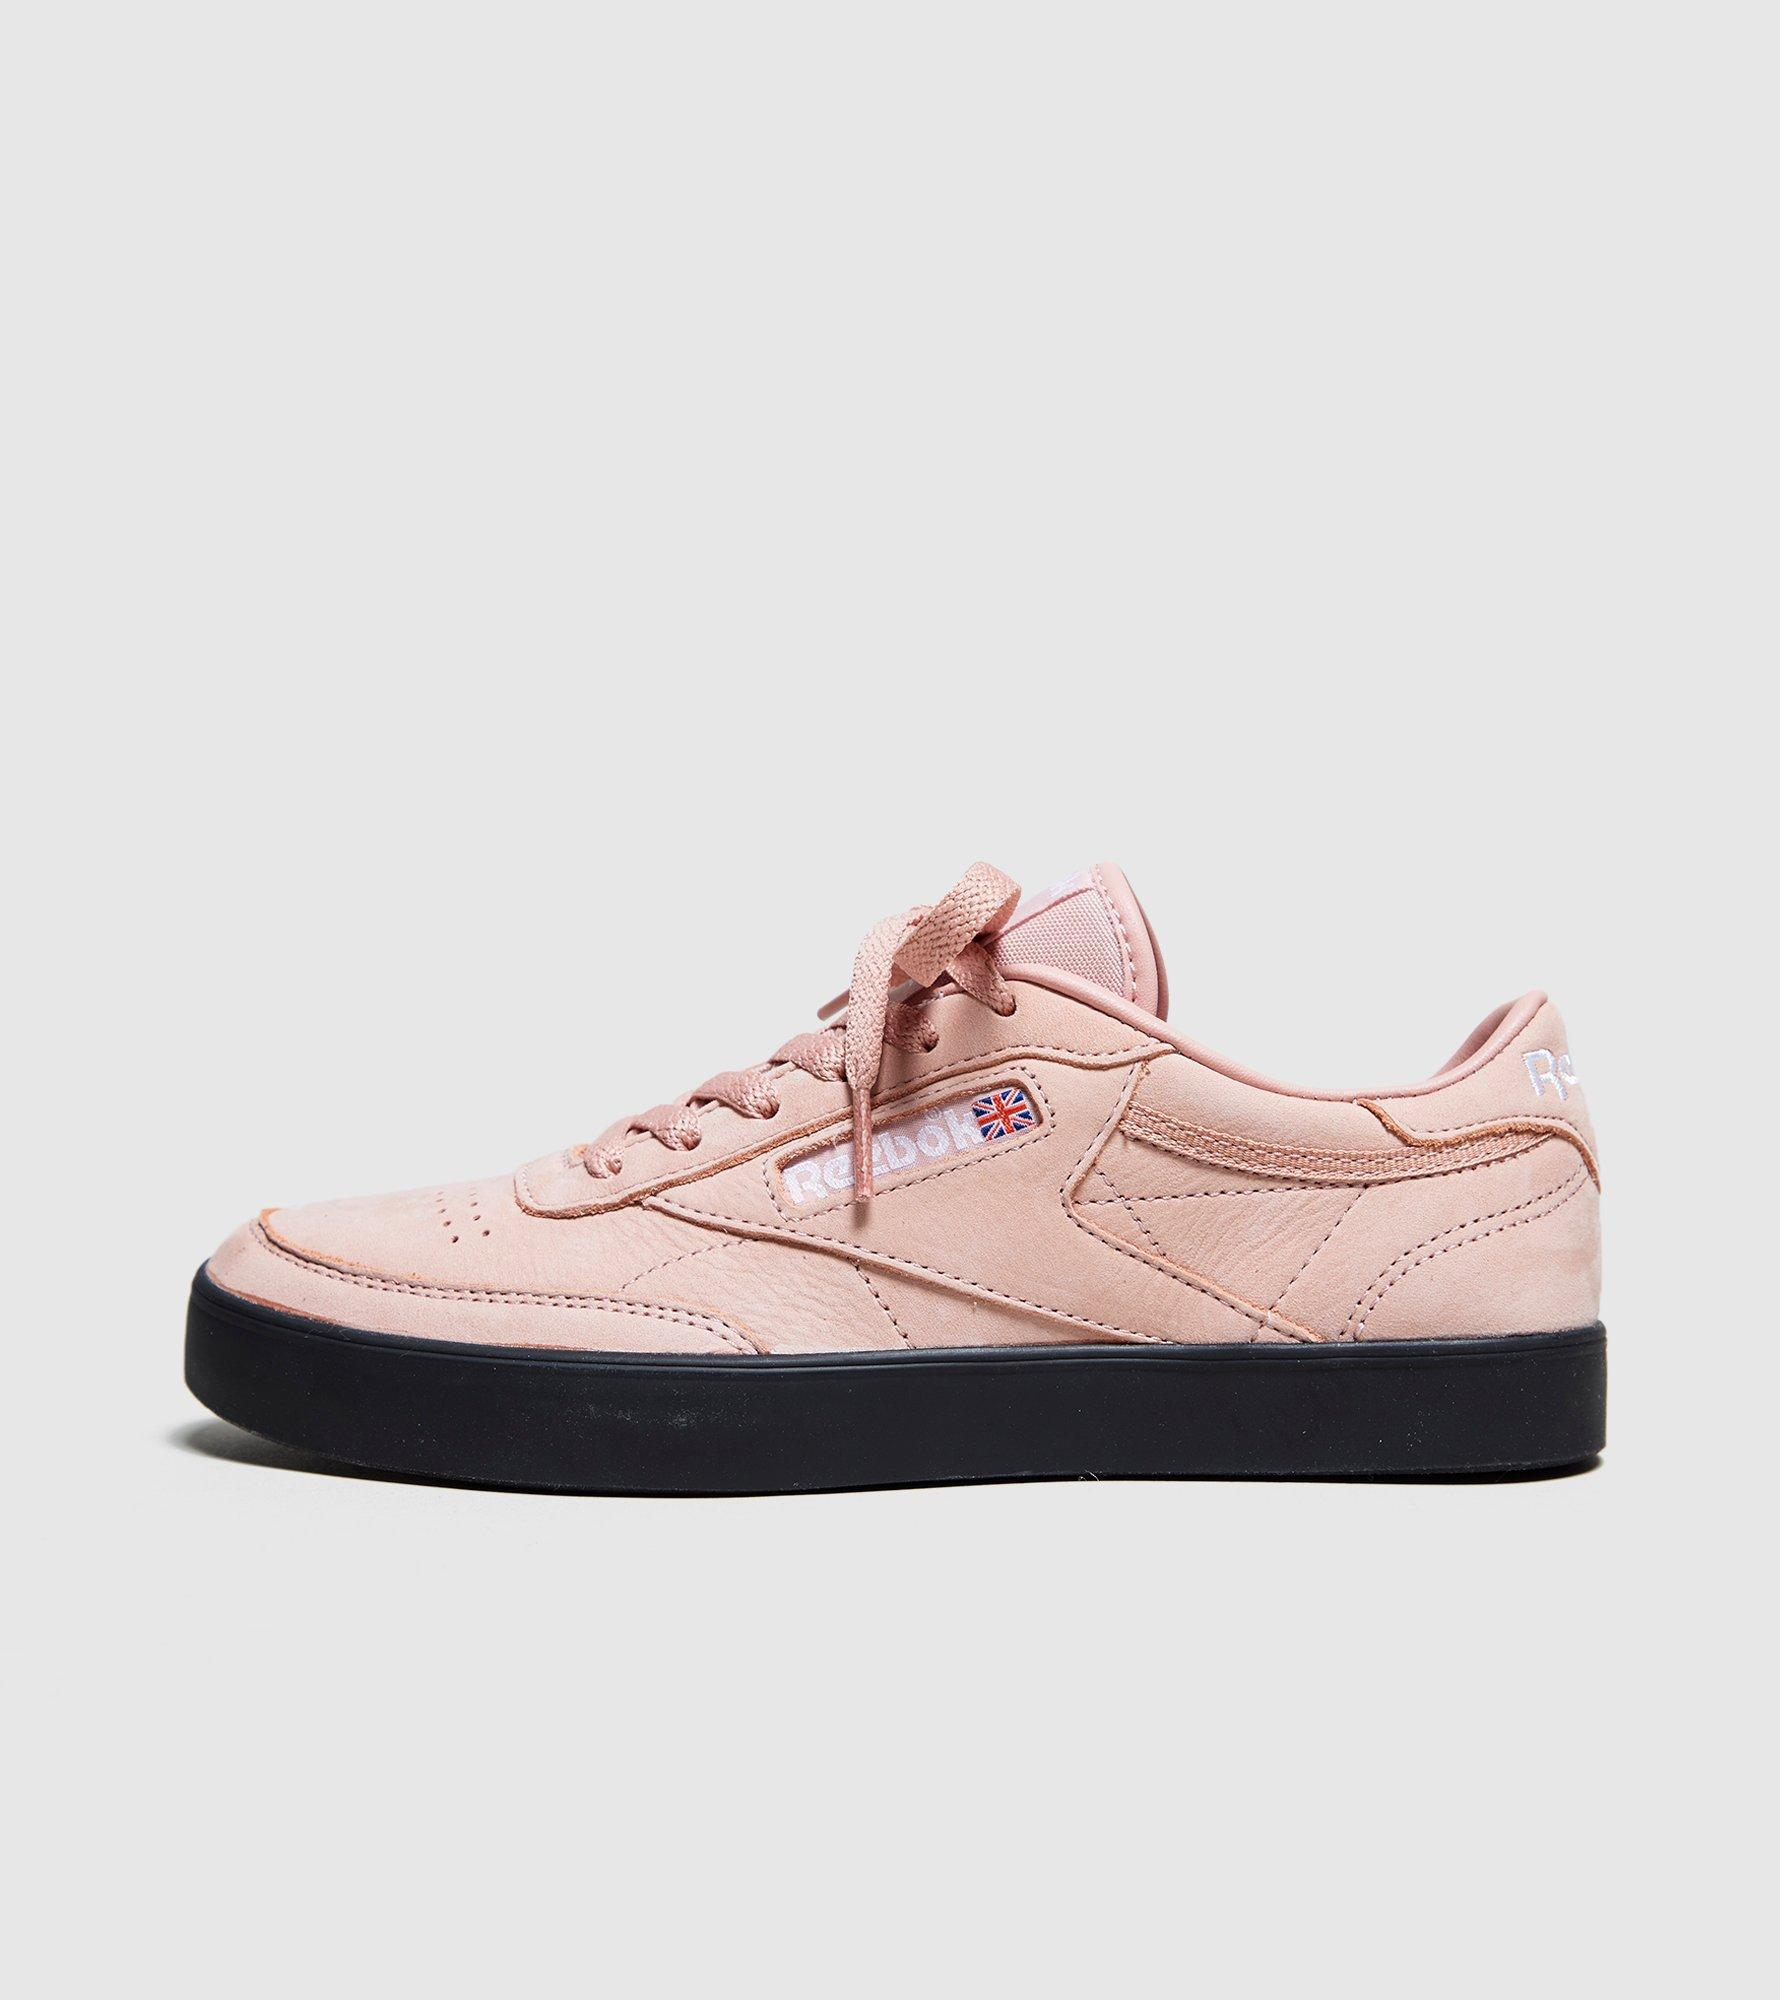 62f8b61cf3c Lyst - Reebok Club C Fvs - Size  Exclusive Women s in Pink